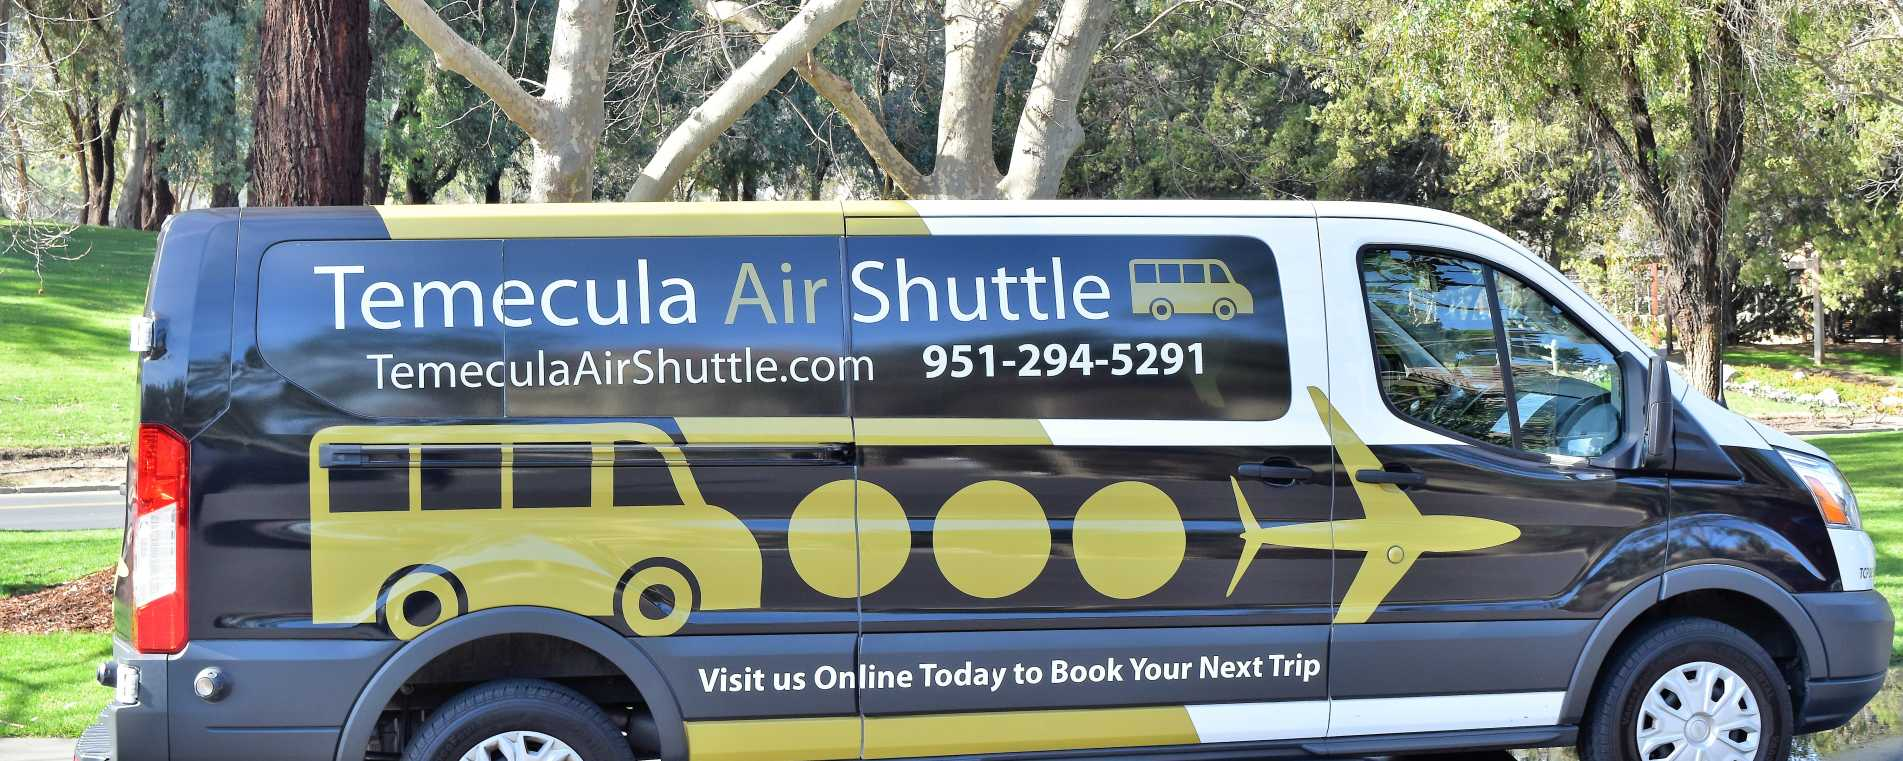 Temecula Air Shuttle Provided Image